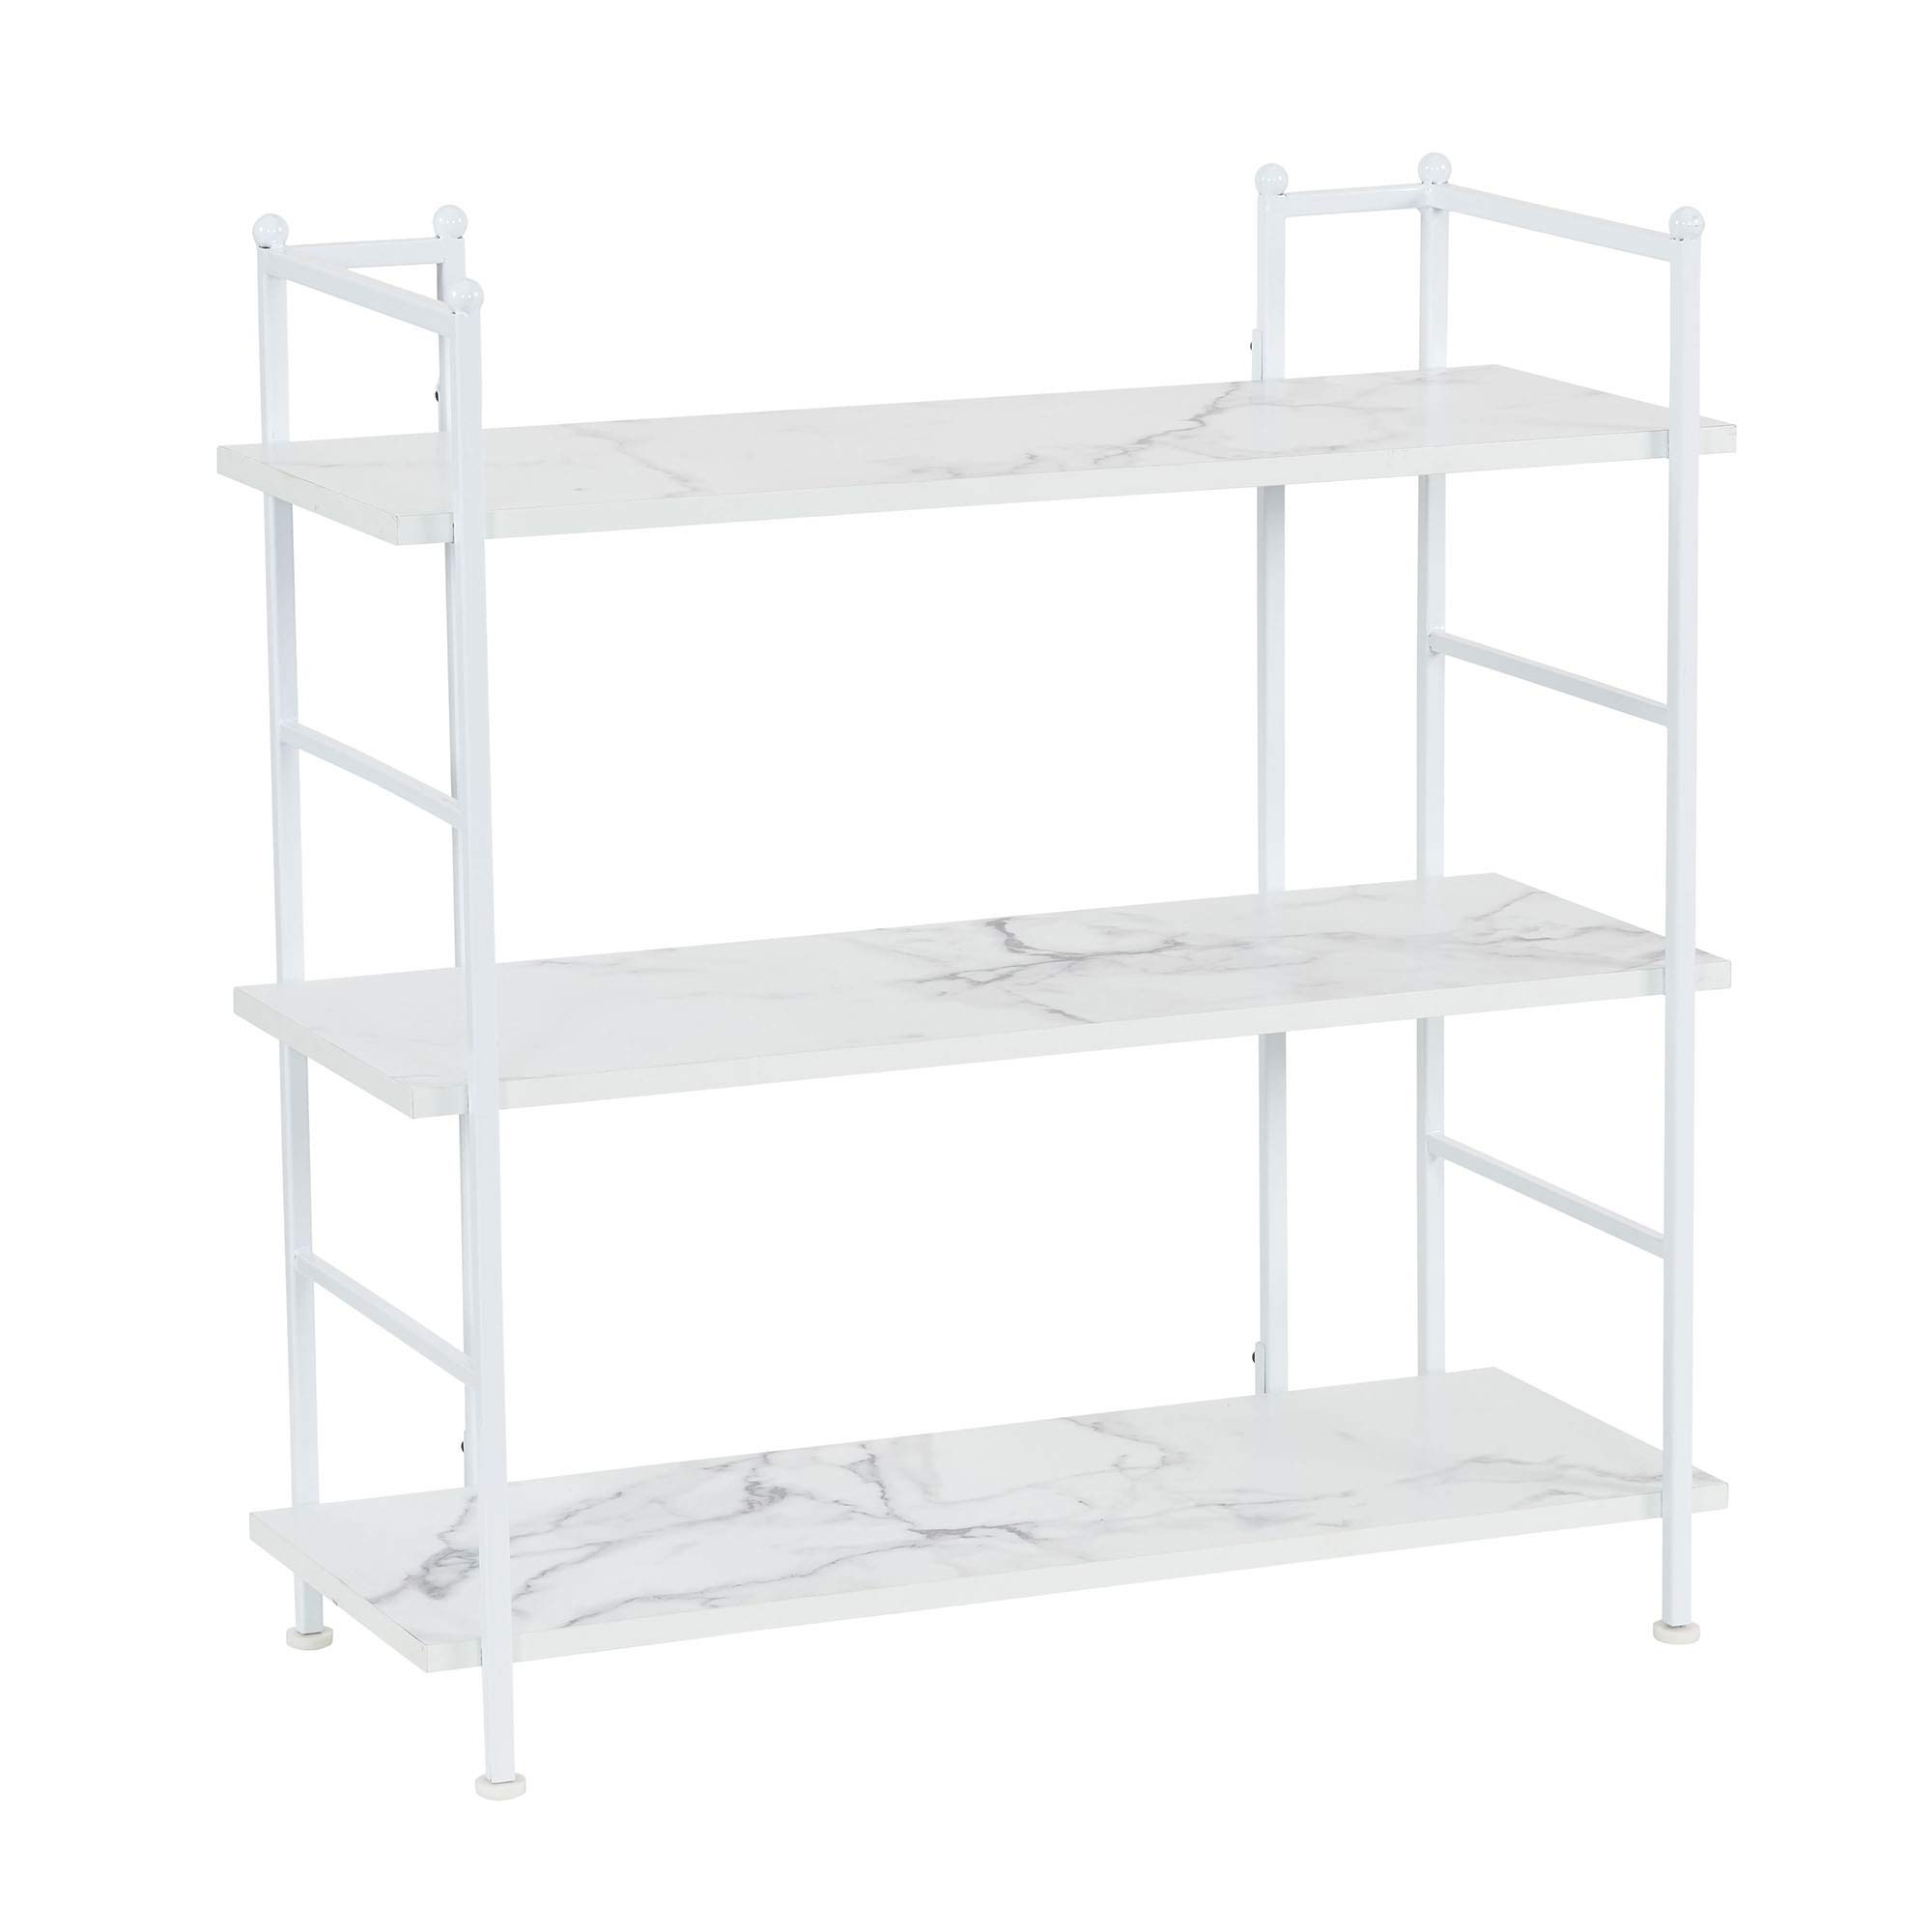 Household Essentials 8062-1 Wide Metal 3 Tier Shelf for Storage and Organization 3, Faux White Marble